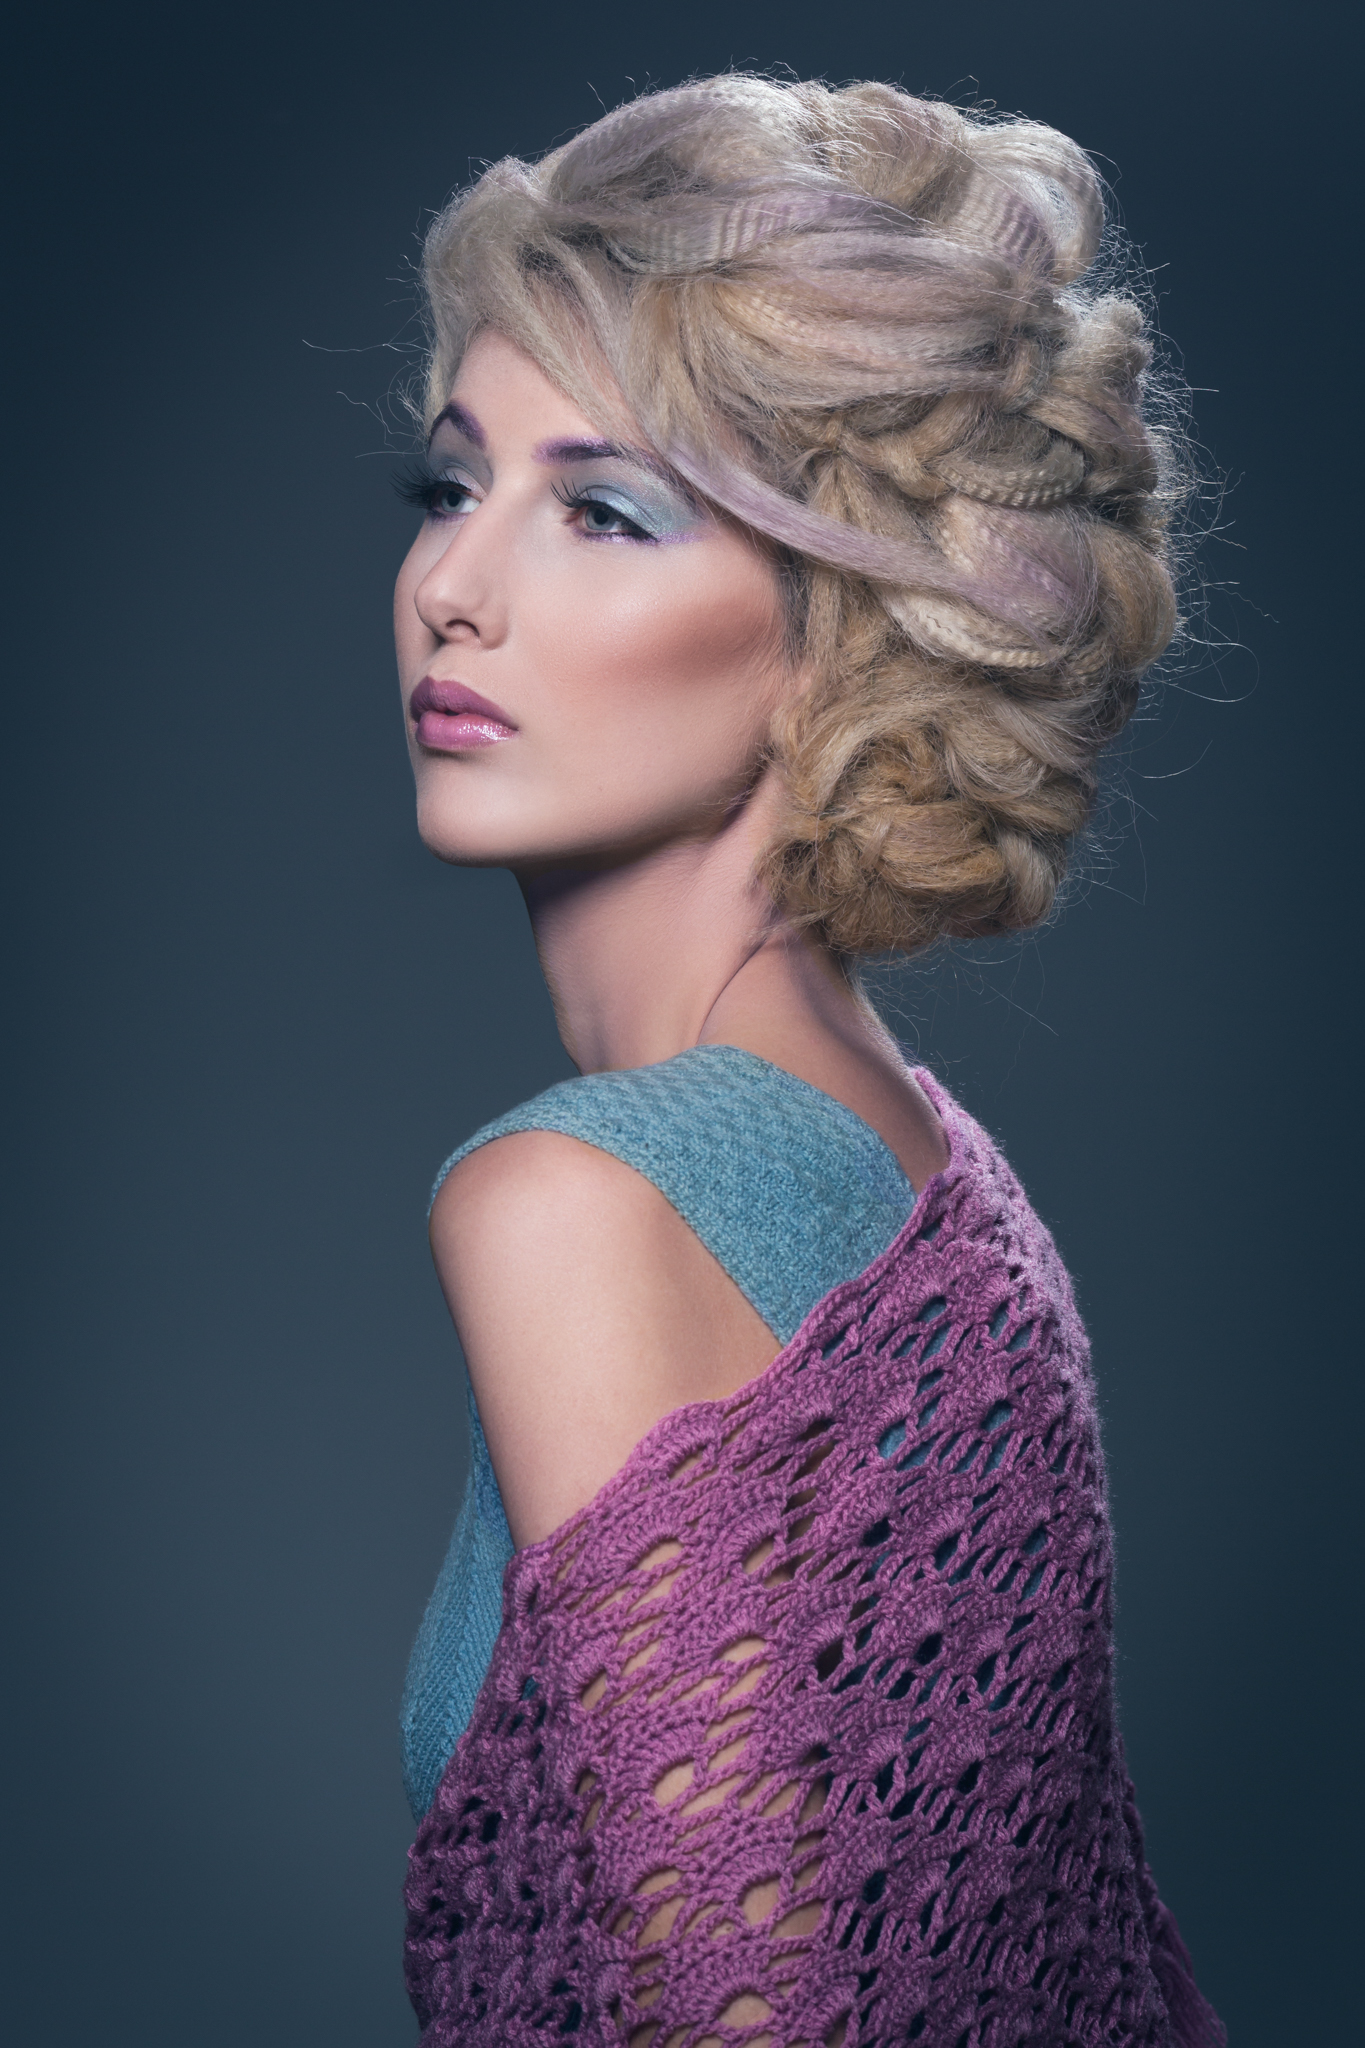 Portfolio - Beauty / Fashion - Carine Belzon | Fotograaf Friesland